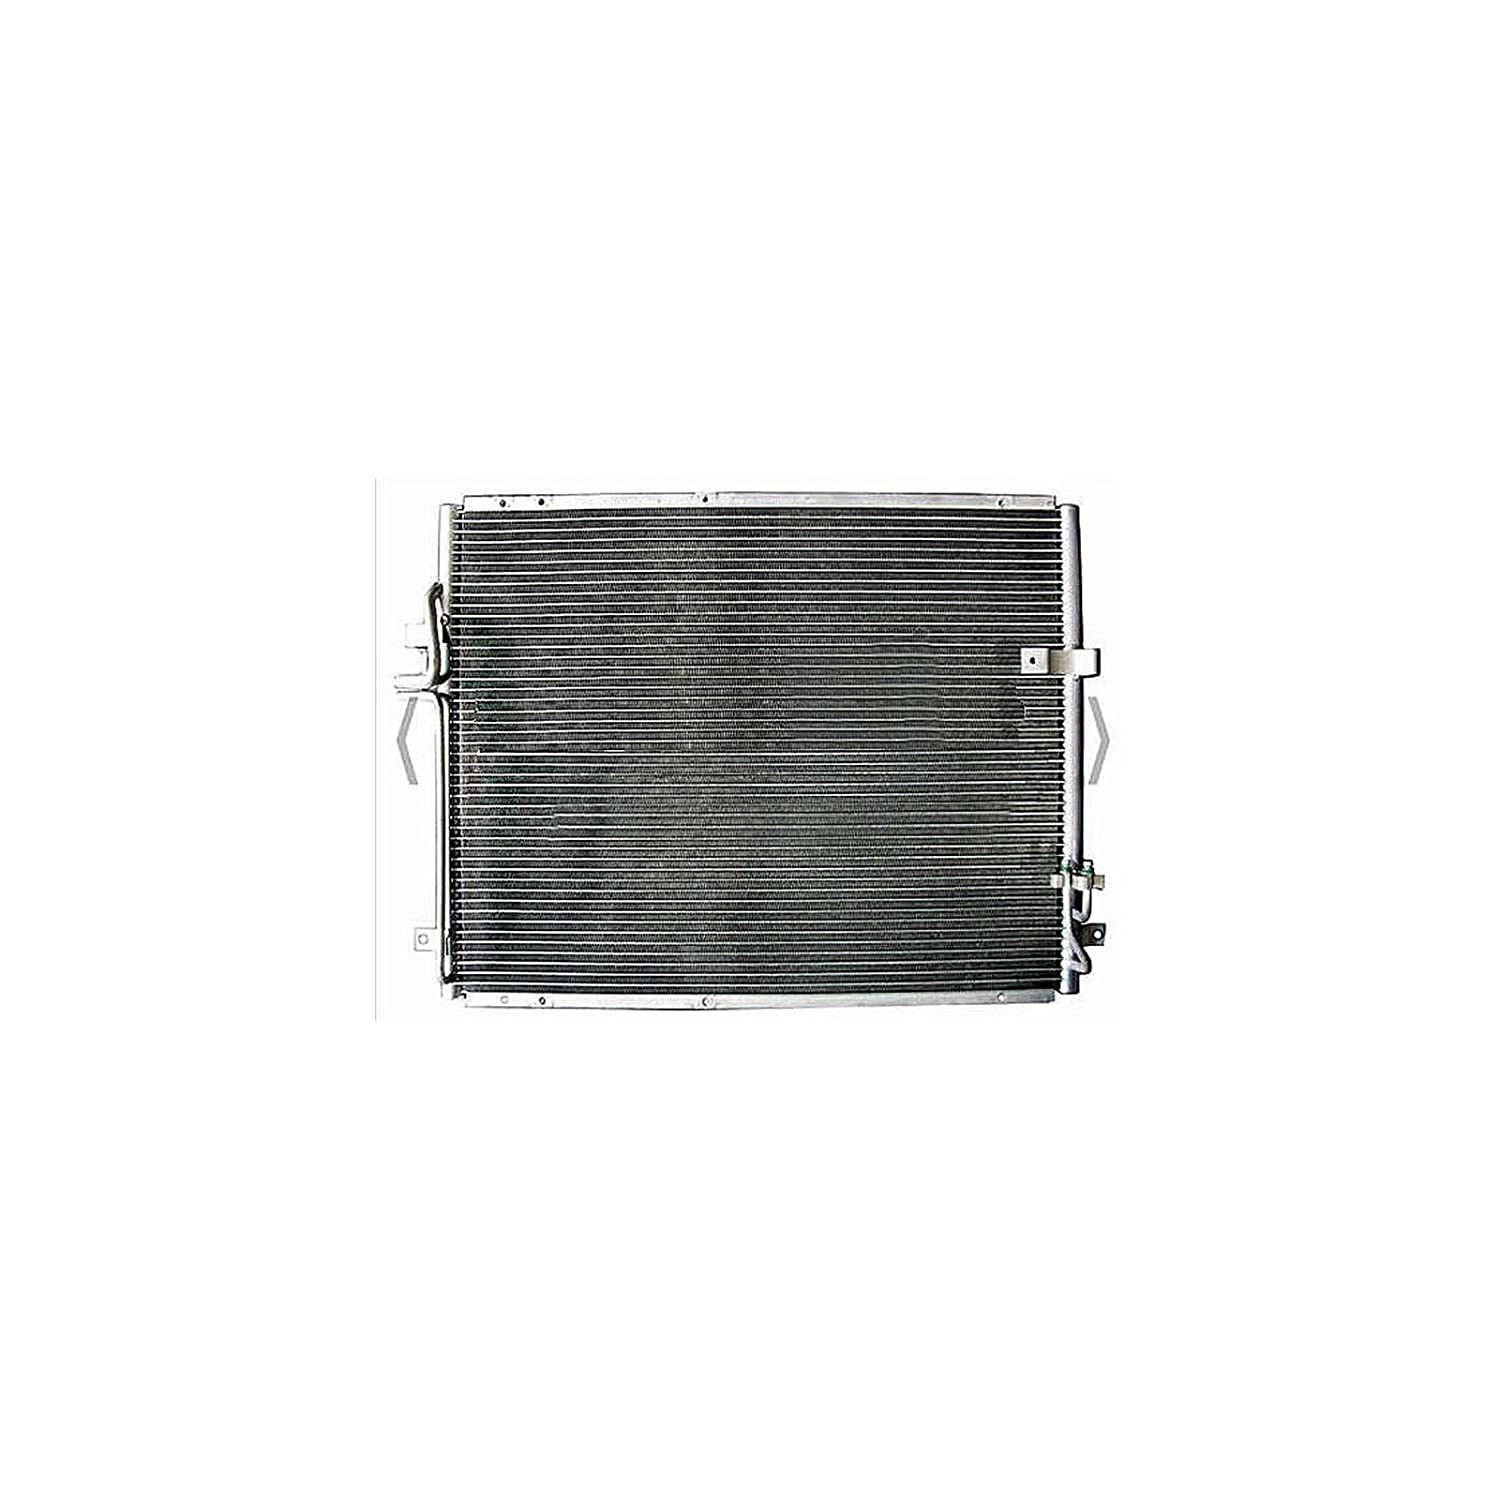 Delphi TSP0225603 Air Conditioning Component